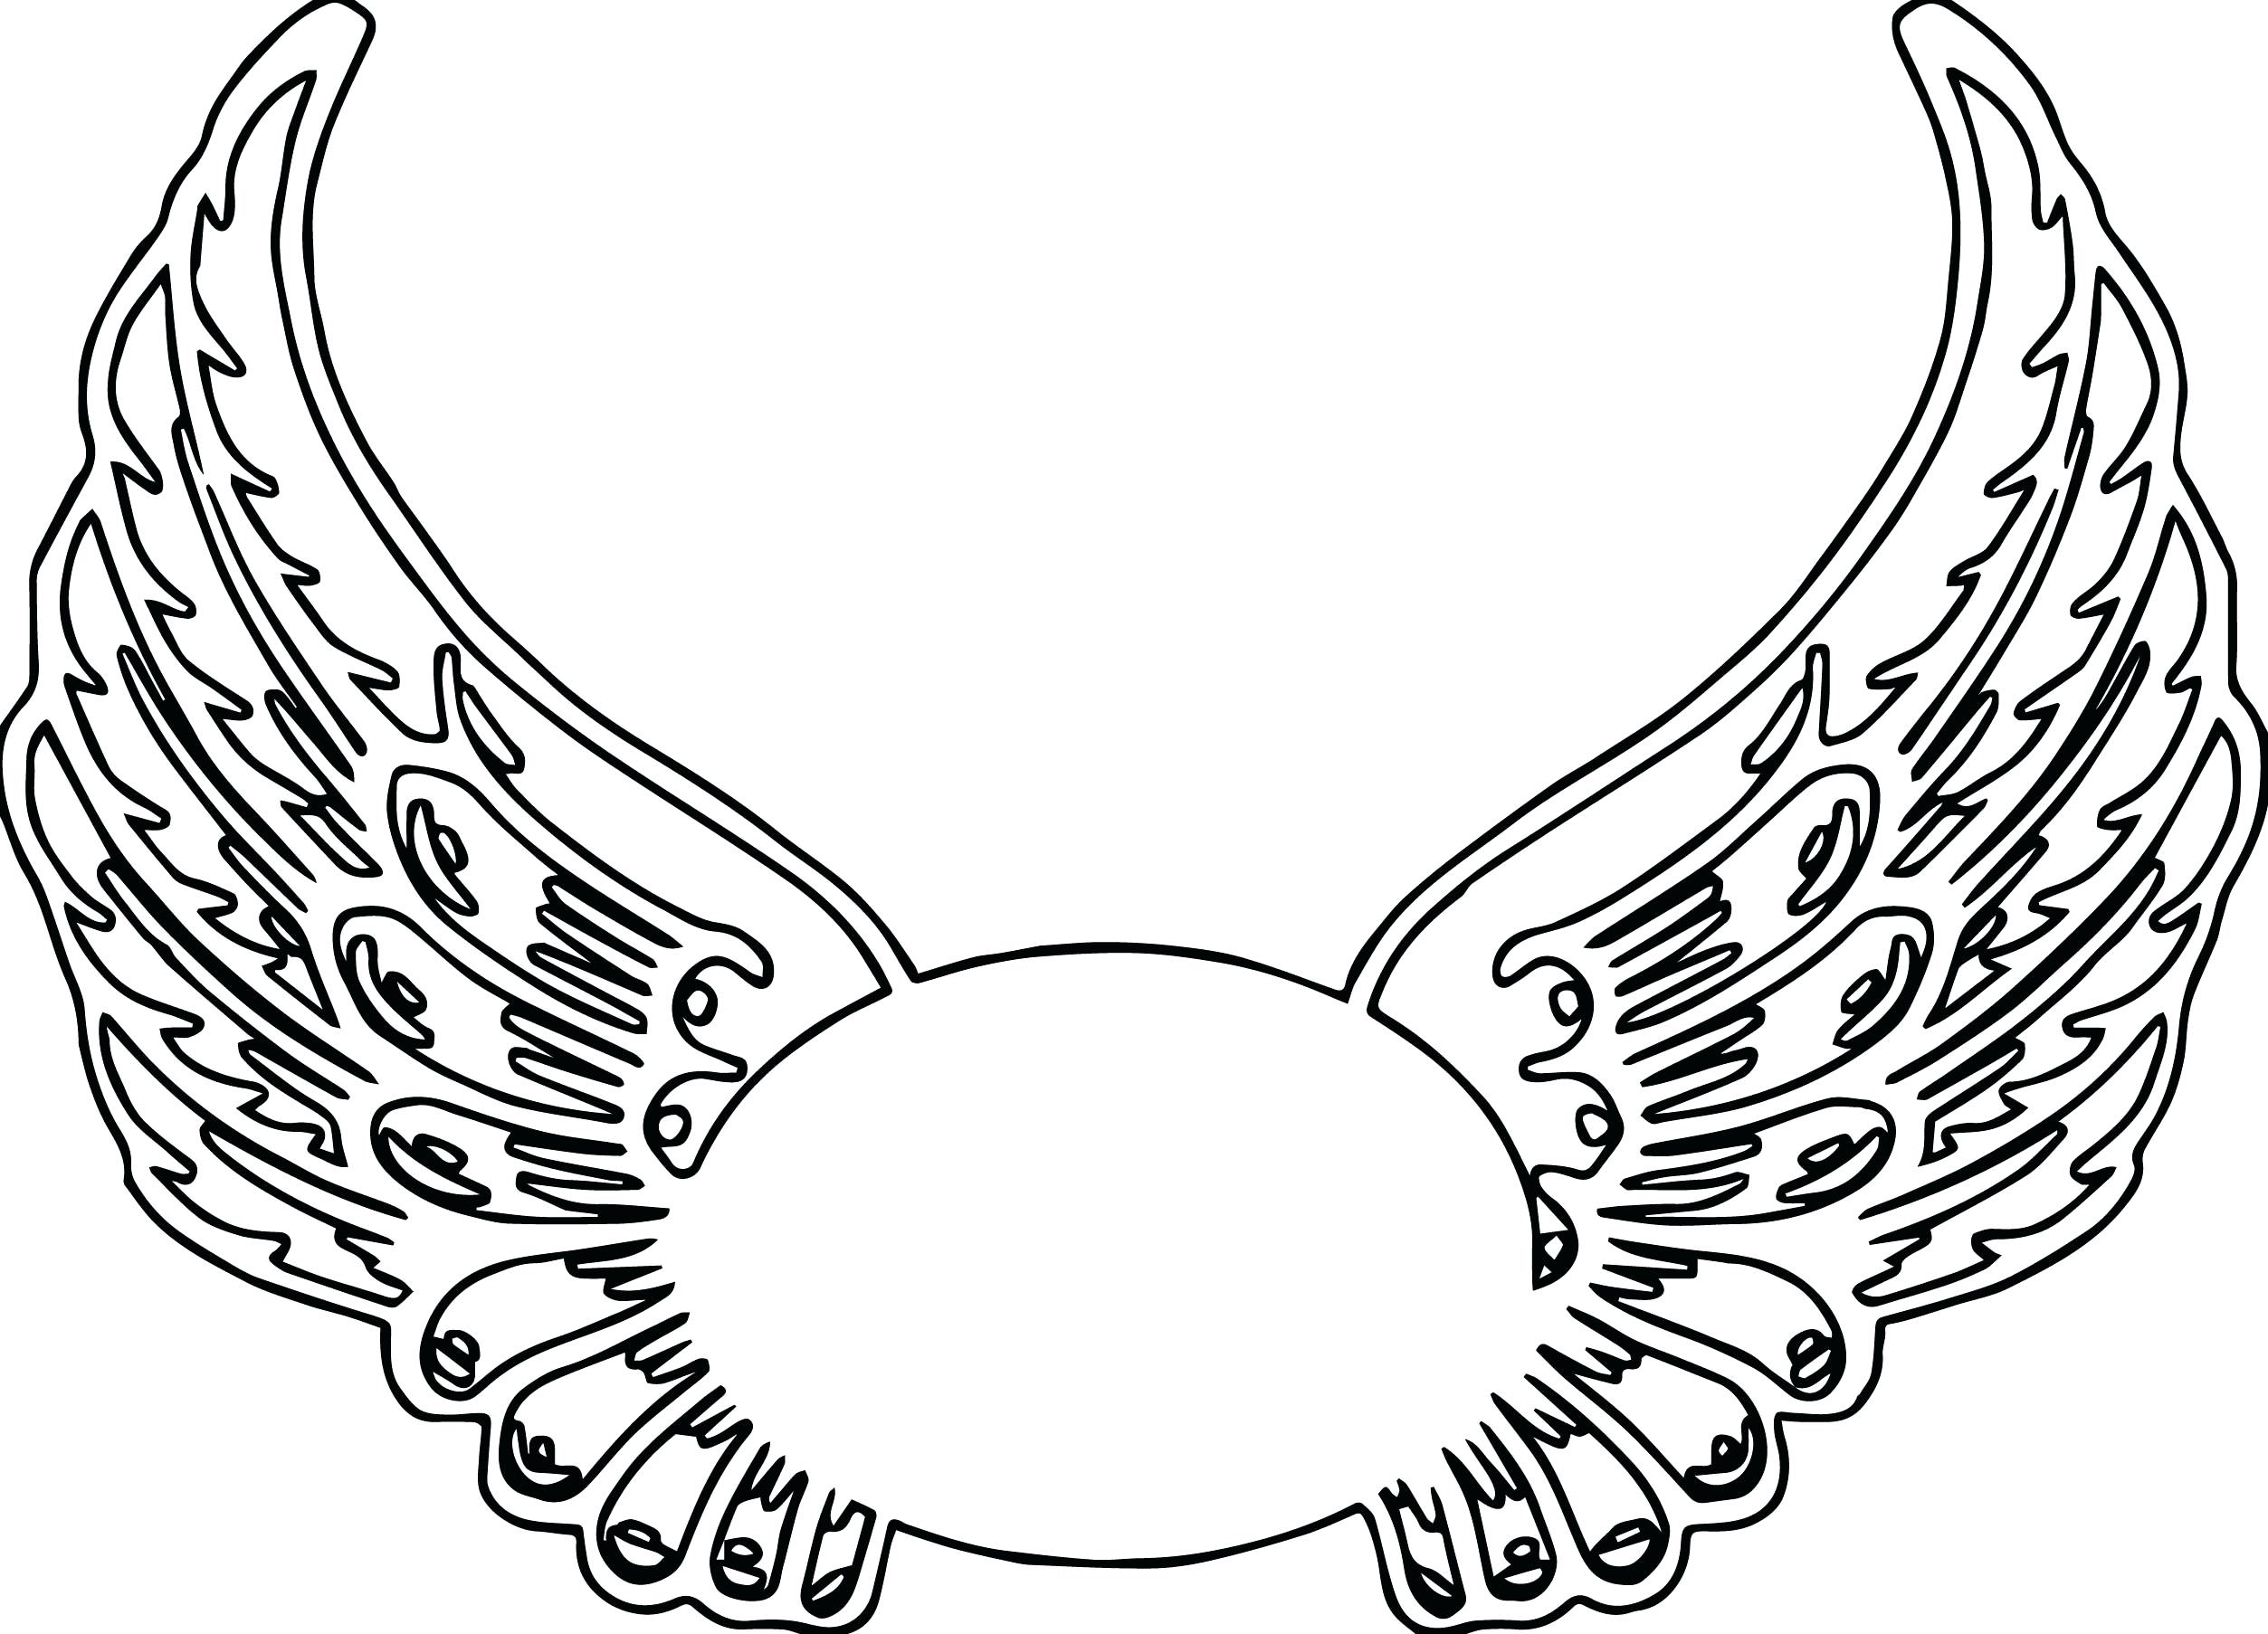 2506x1806 Best Of Printable Adult Coloring Pages Angel Adult Coloring Pages